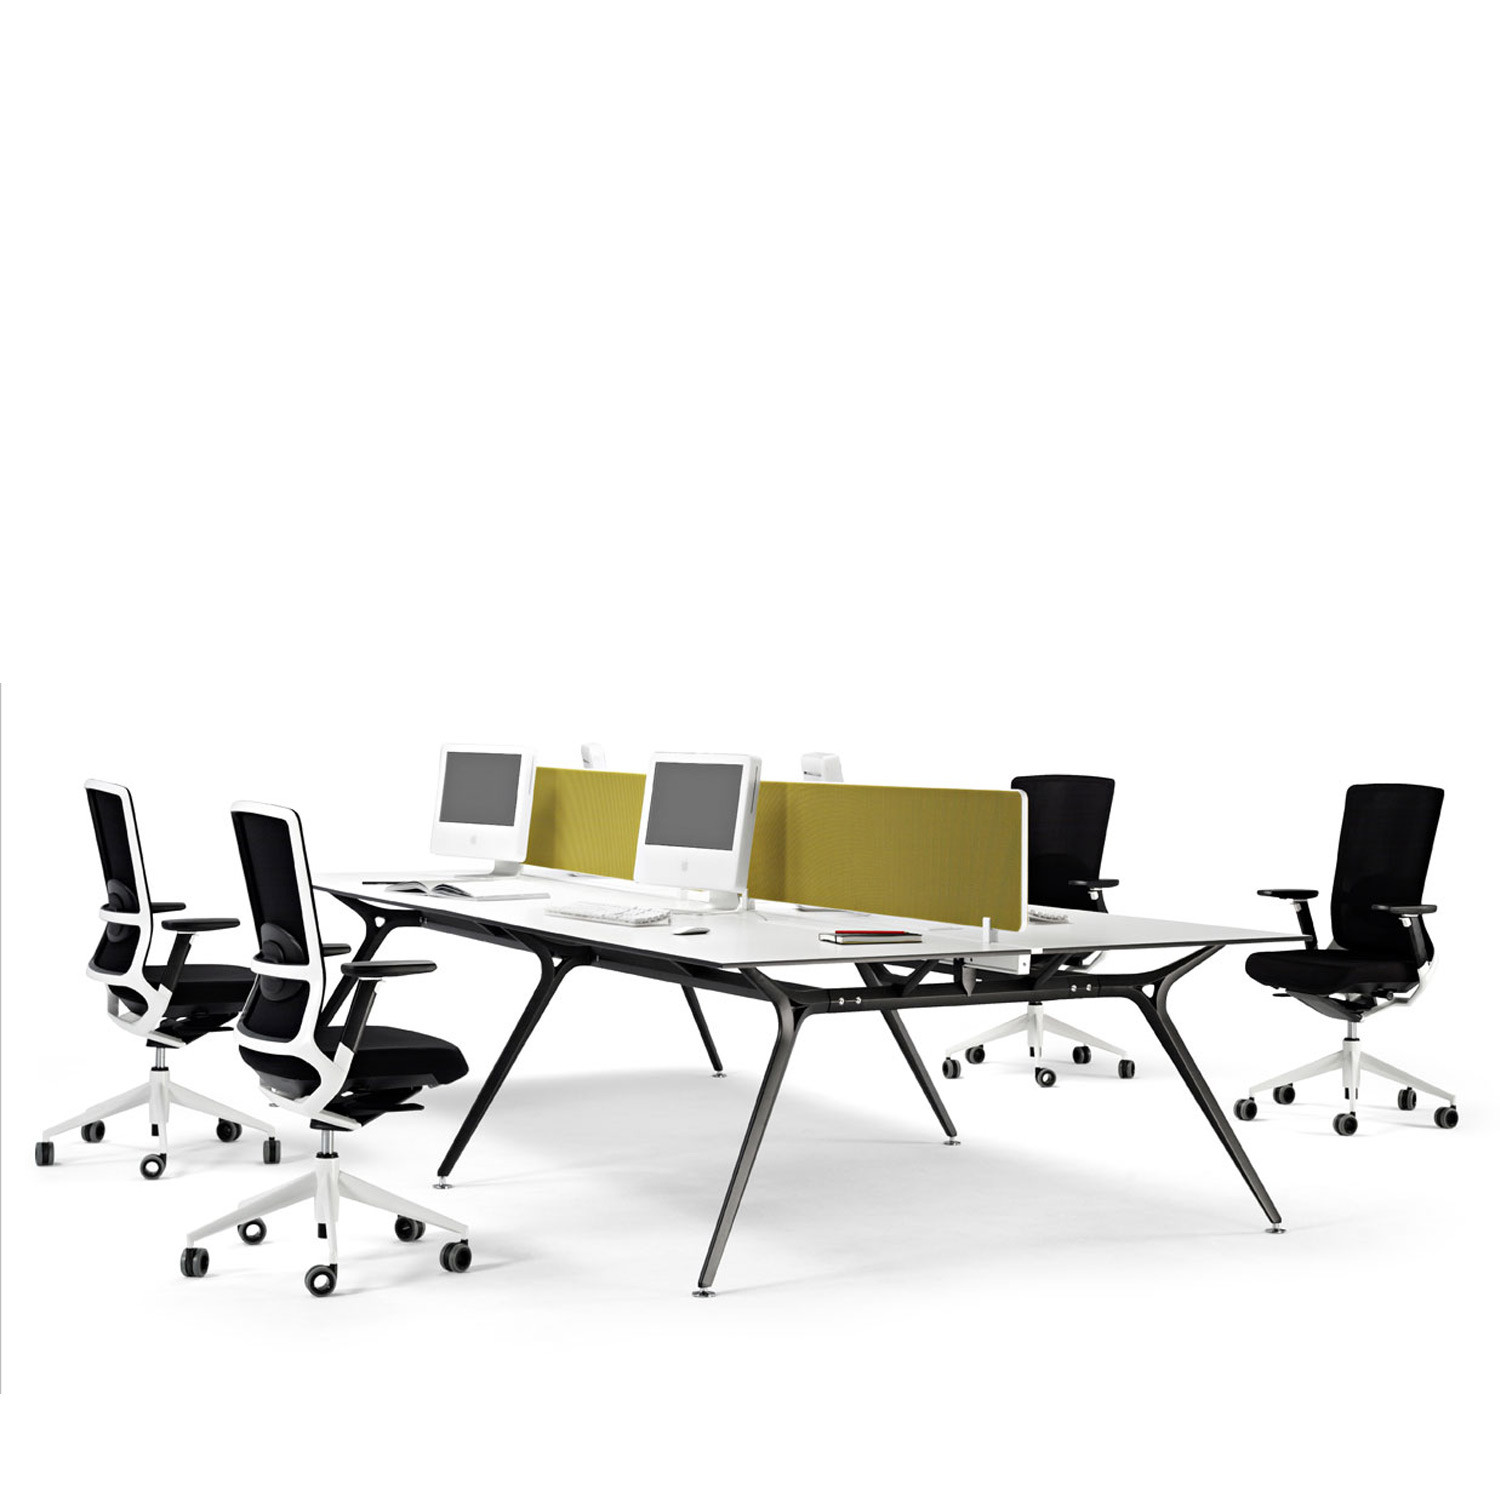 TNK 500 Operative Chairs